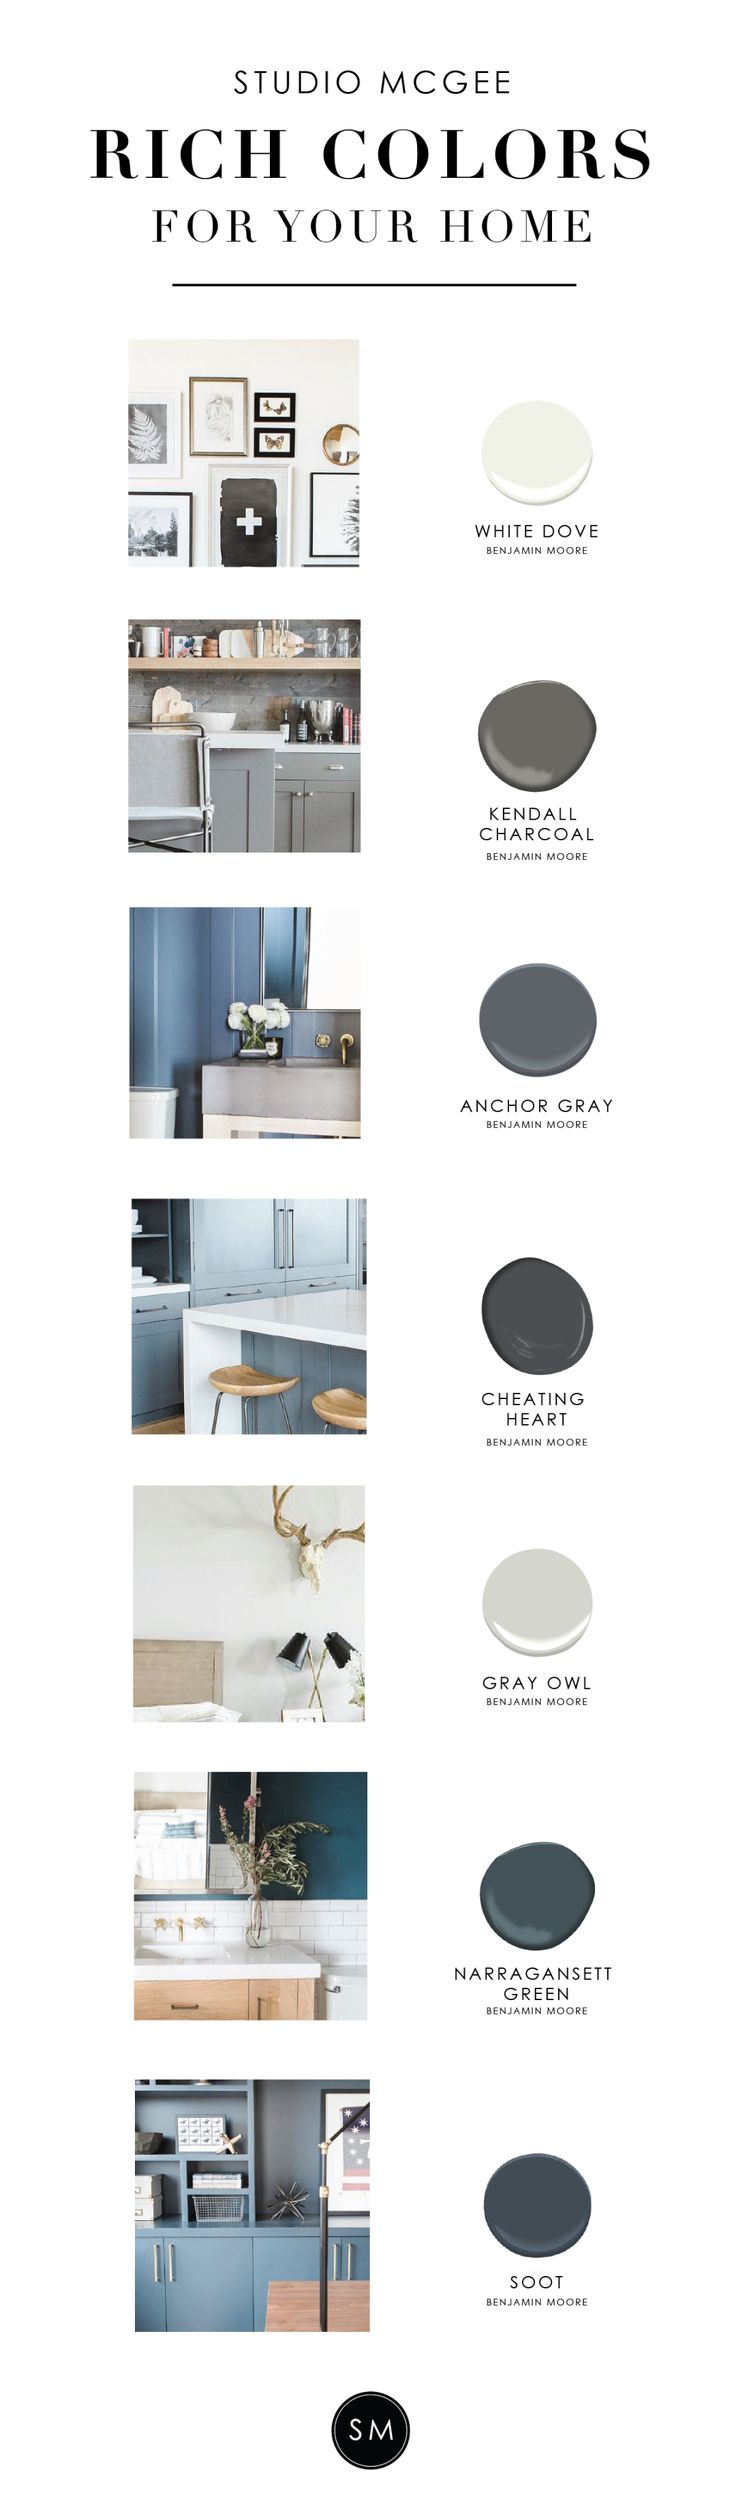 860 best images about wall colors on pinterest revere on best color for studio walls id=27009